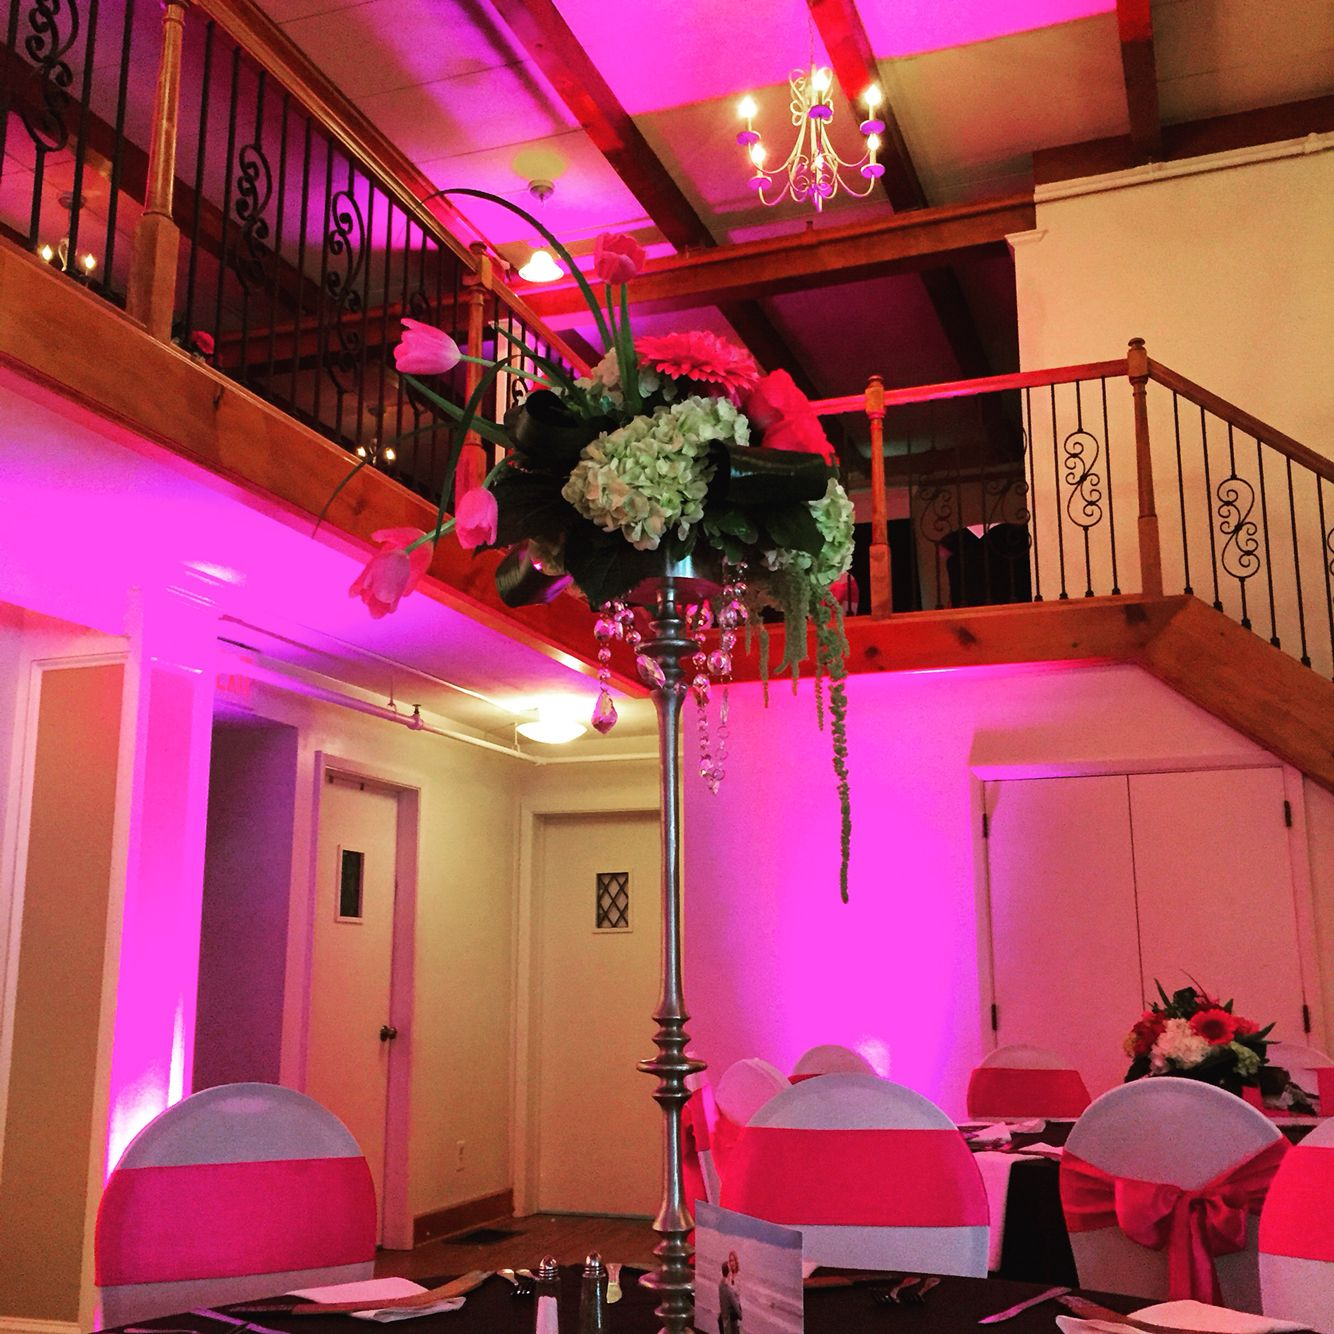 Talk centerpieces from Wisteria and pink uplighting